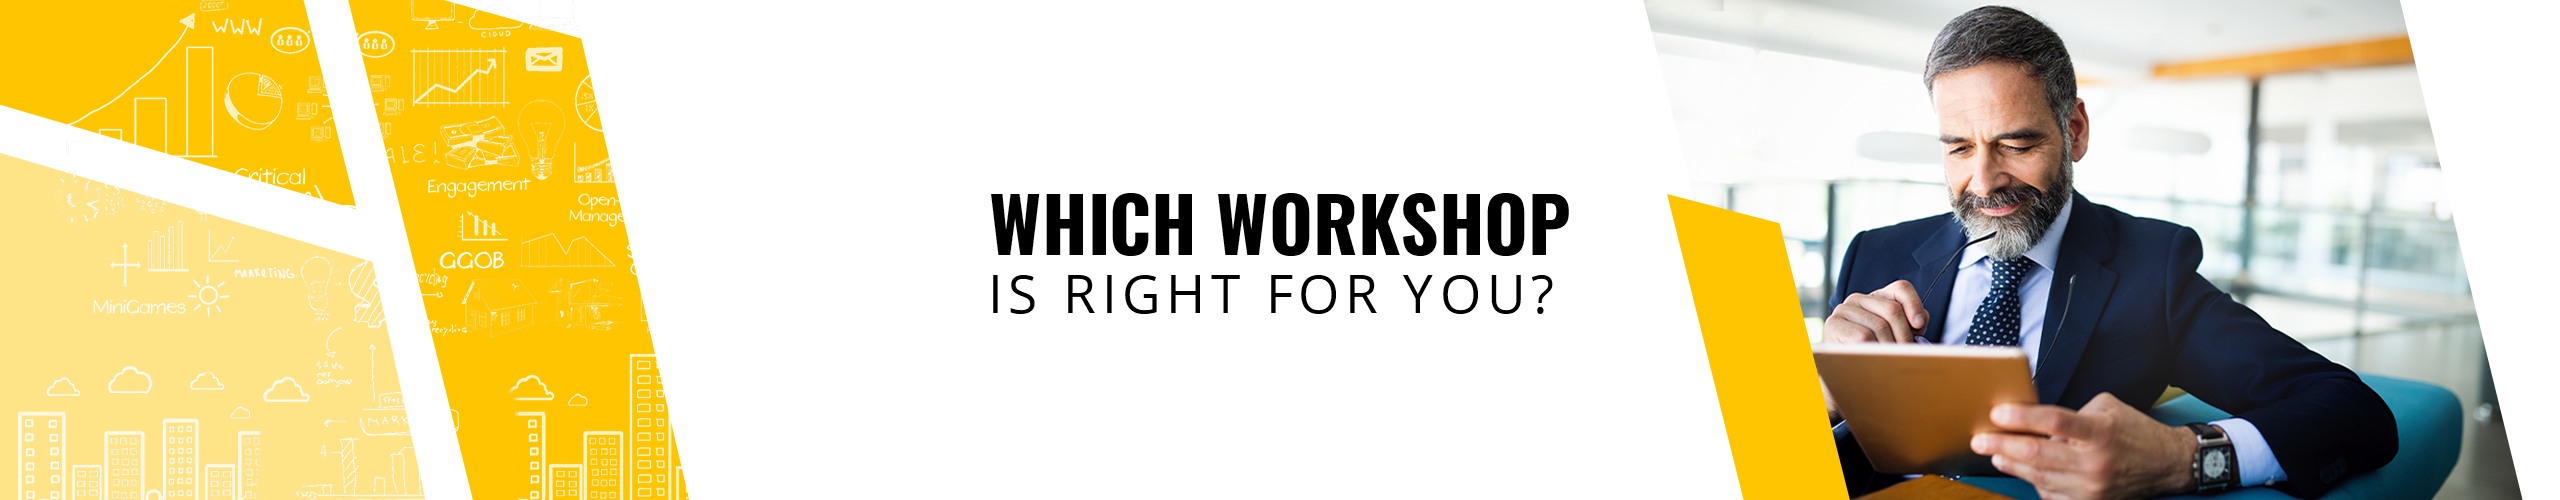 Which workshop is for you - header